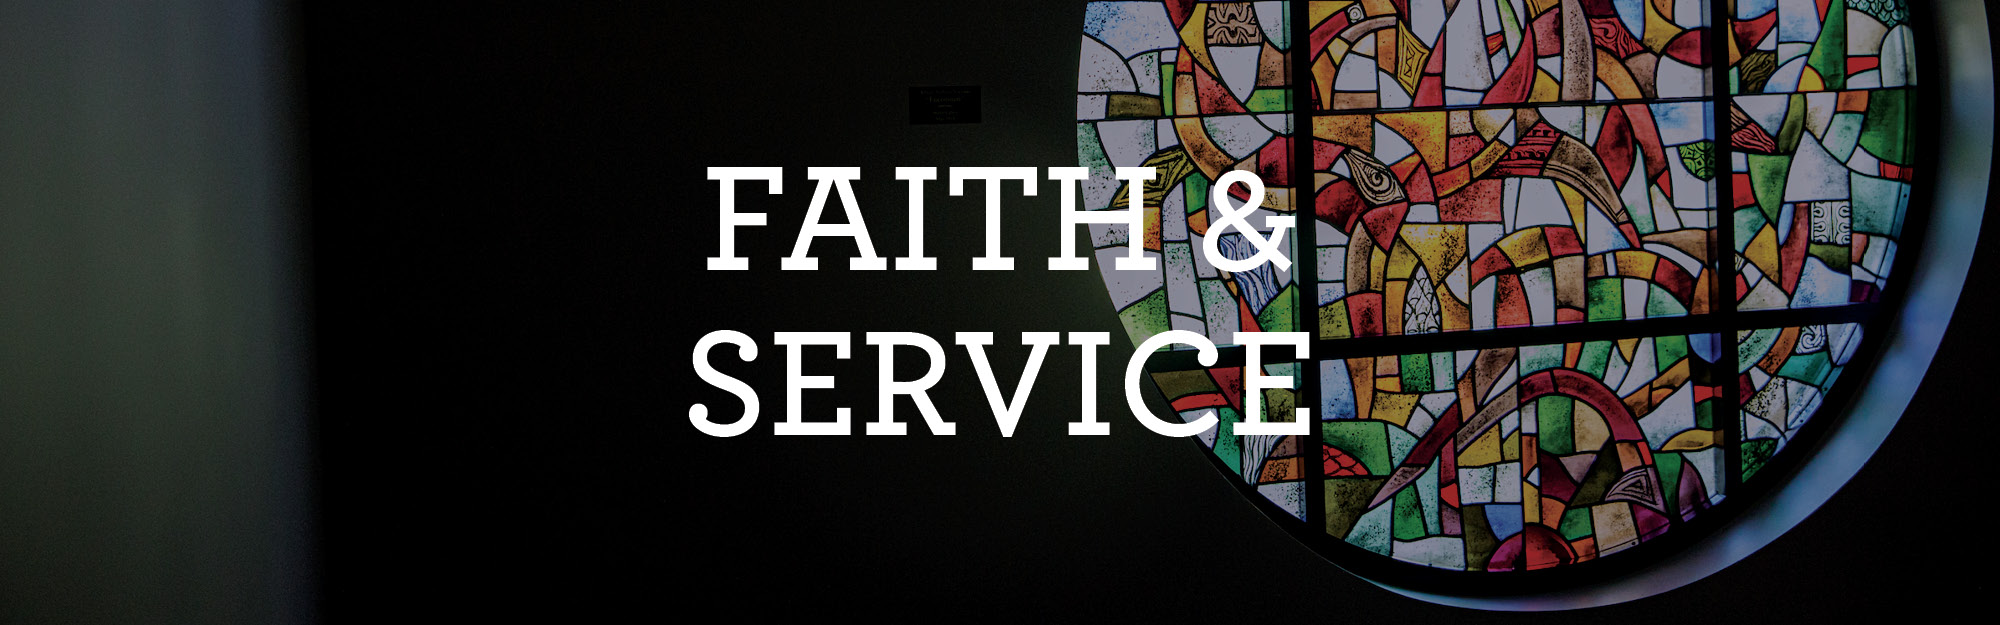 faith and service information